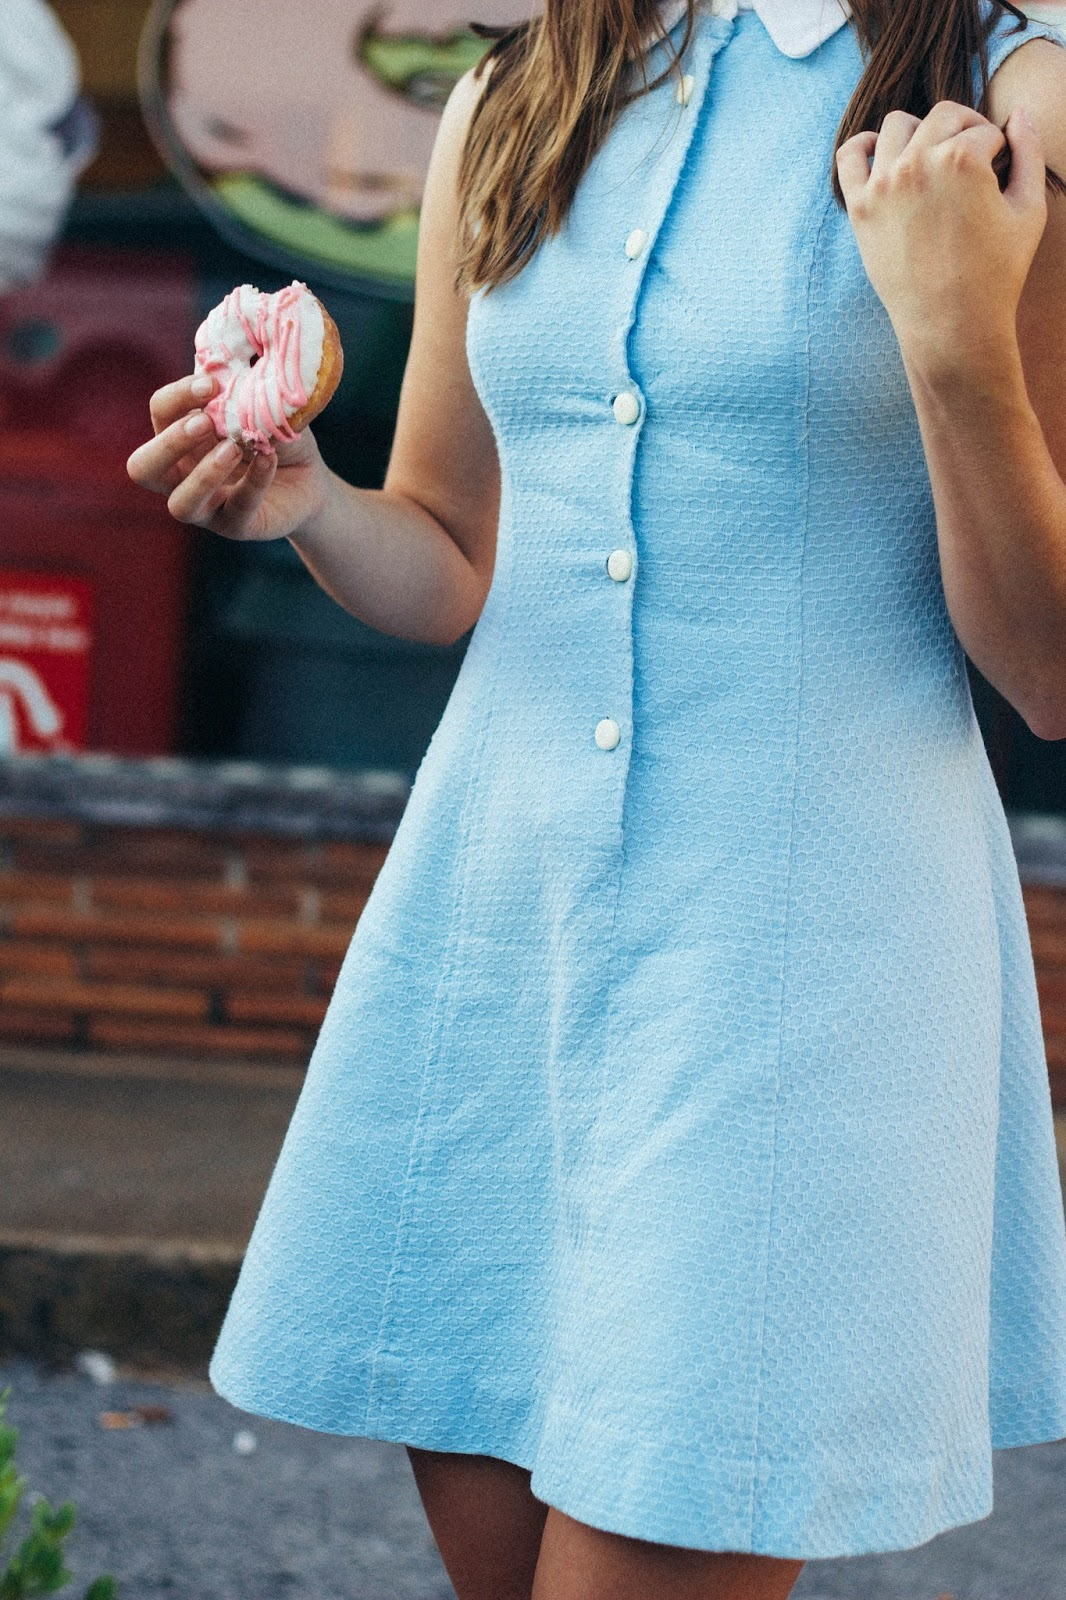 retro, blue, peter pan collar dress, vintage, vintage style, retro style, 1960's style, 60's style, light blue, red shoes, forever 21, chattanooga, tennessee, julie darling donuts, chattanooga shooting, personal style blogger, movie blogger, film, photography, lana del rey style, mad men style, mad men, girly, cute, mod, heartbreaker, screenwriting, costume design, styling,